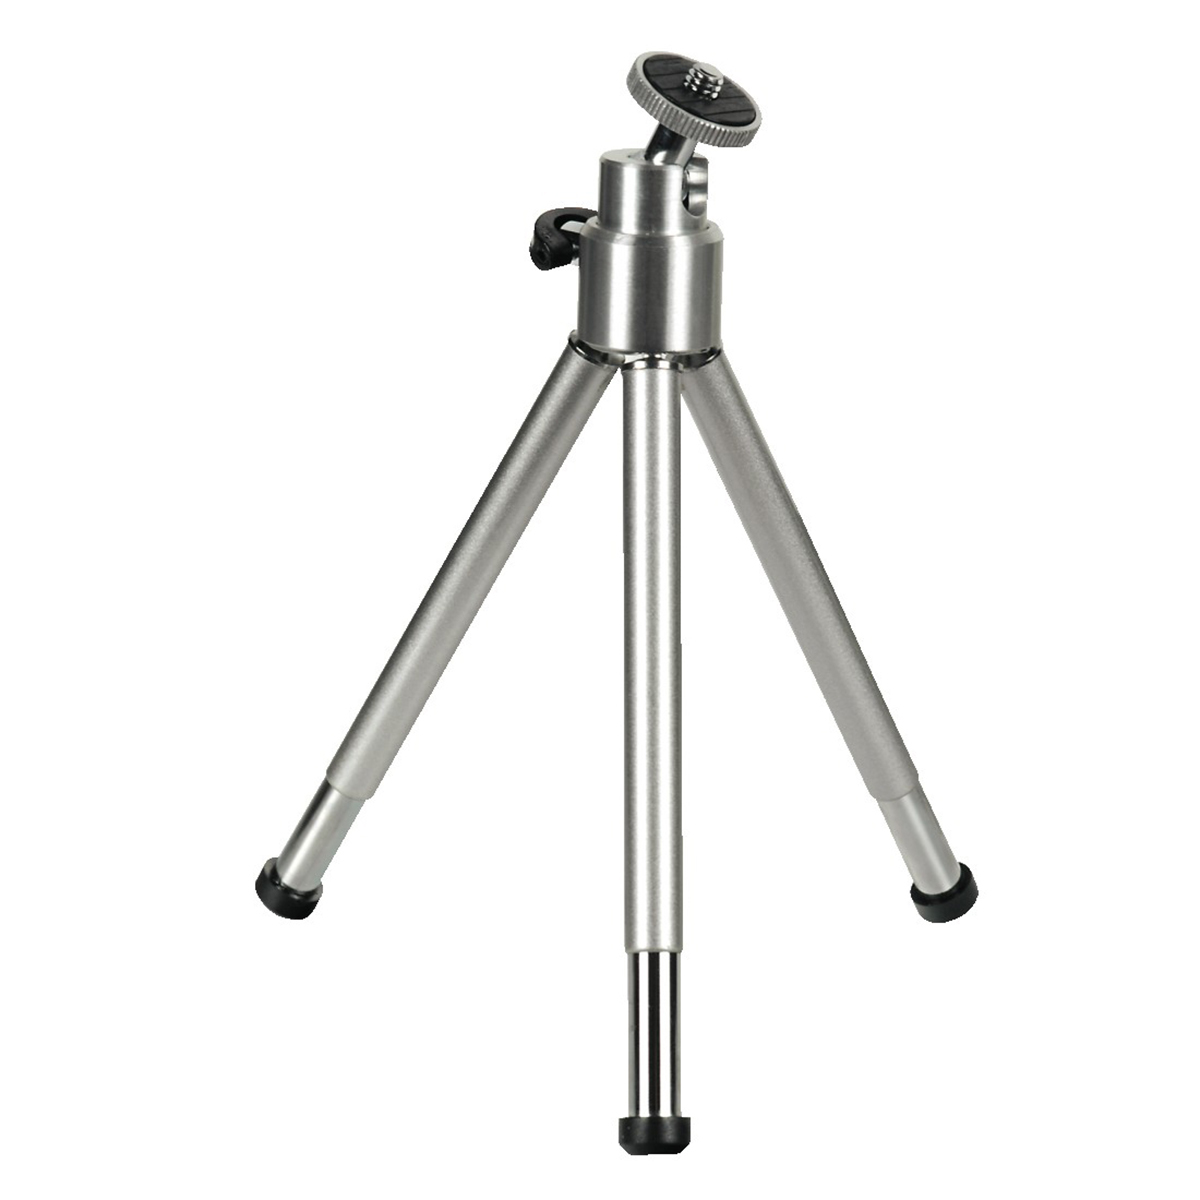 hama Mini Tripod with Ball Tilt Head 00004009 - MW01